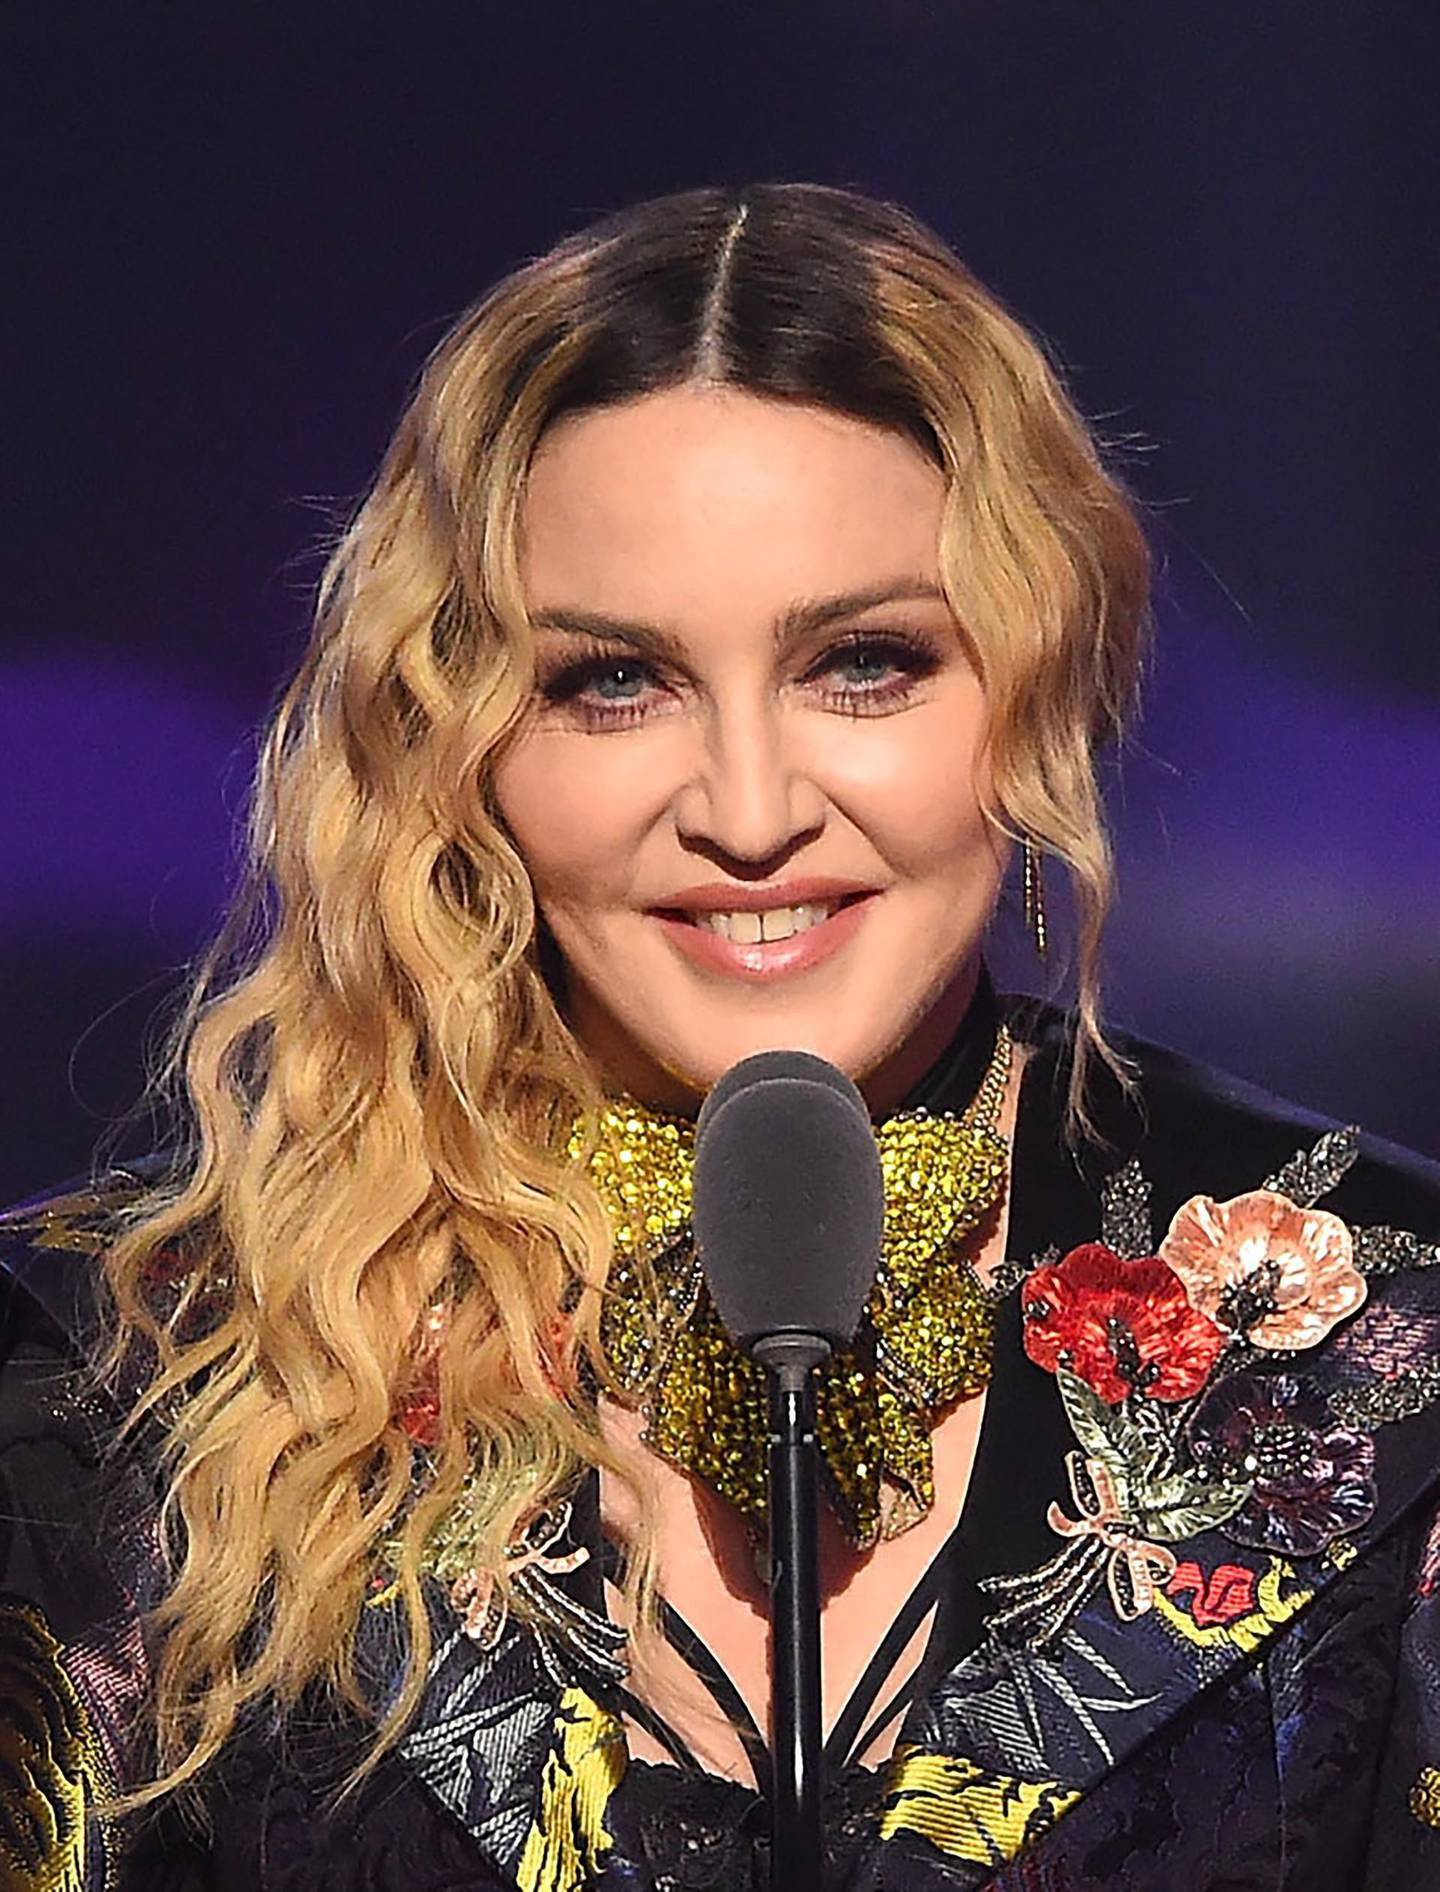 NEW YORK, NY - DECEMBER 09: Madonna speaks on stage at the Billboard Women in Music 2016 event on December 9, 2016 in New York City.   Nicholas Hunt/Getty Images for Billboard Magazine/AFP